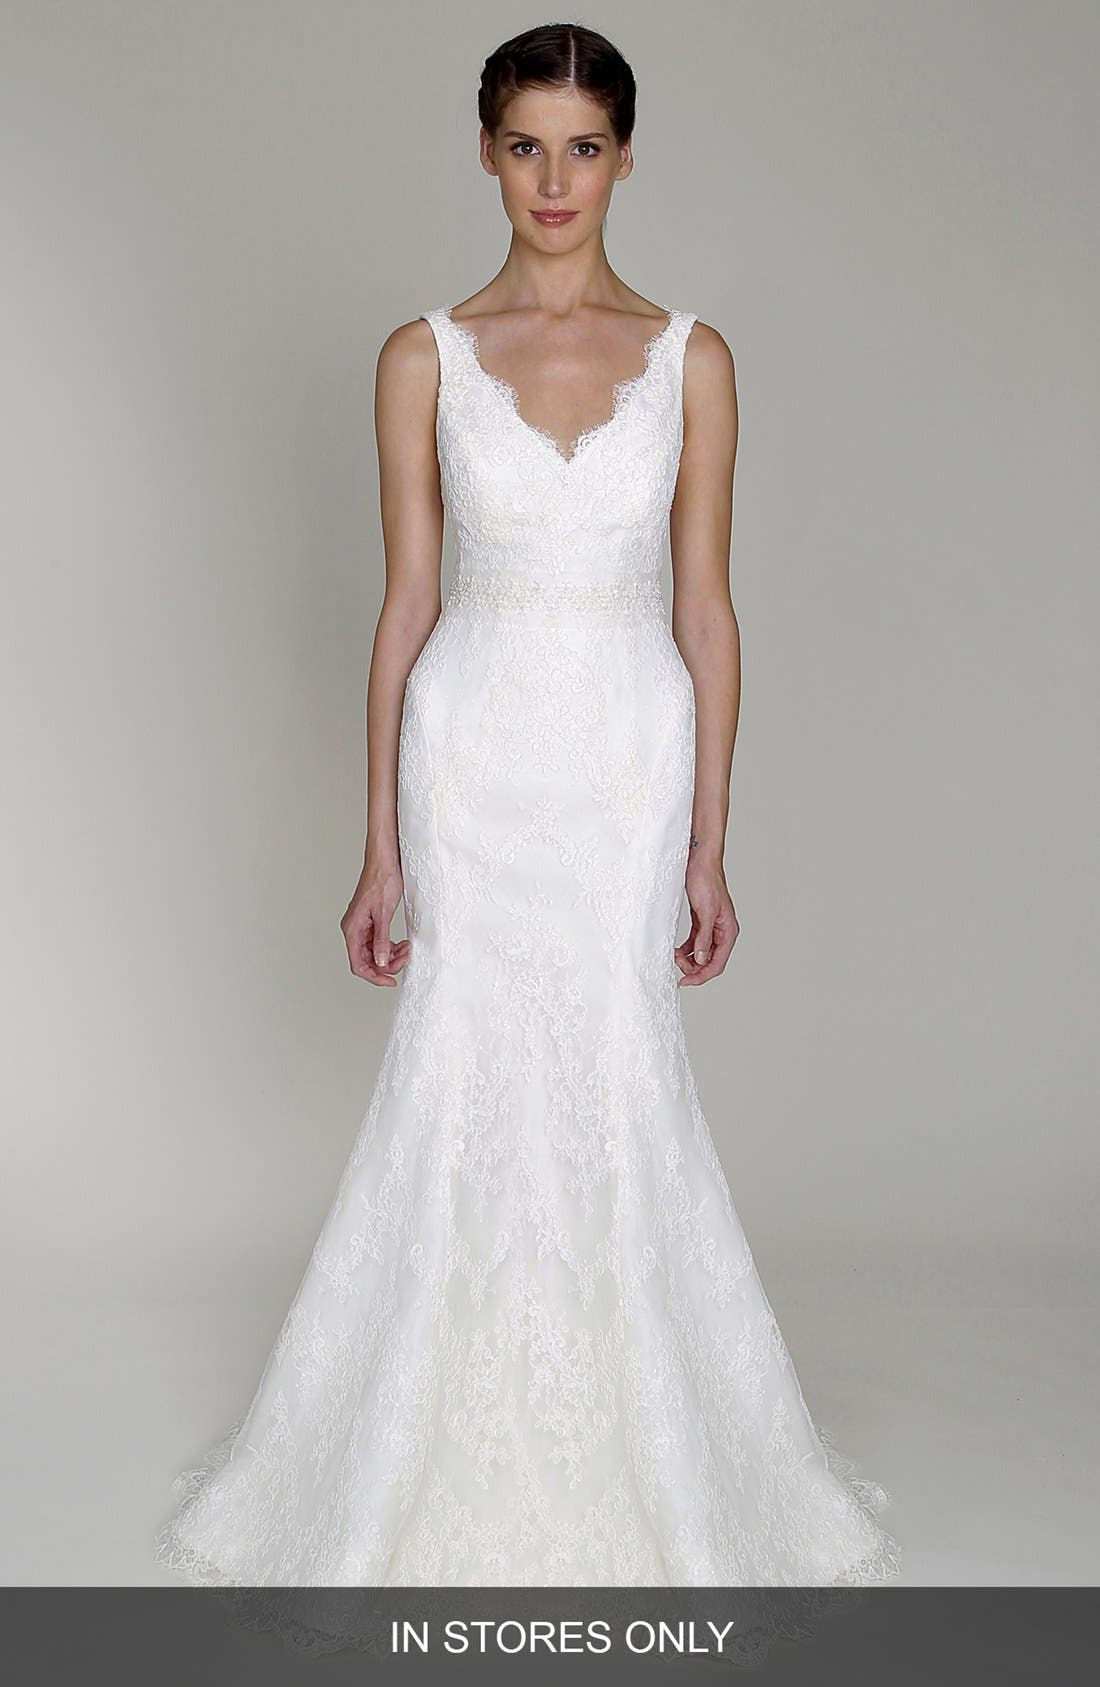 Main Image - BLISS Monique Lhuillier Embroidered Lace Trumpet Dress (In Stores Only)